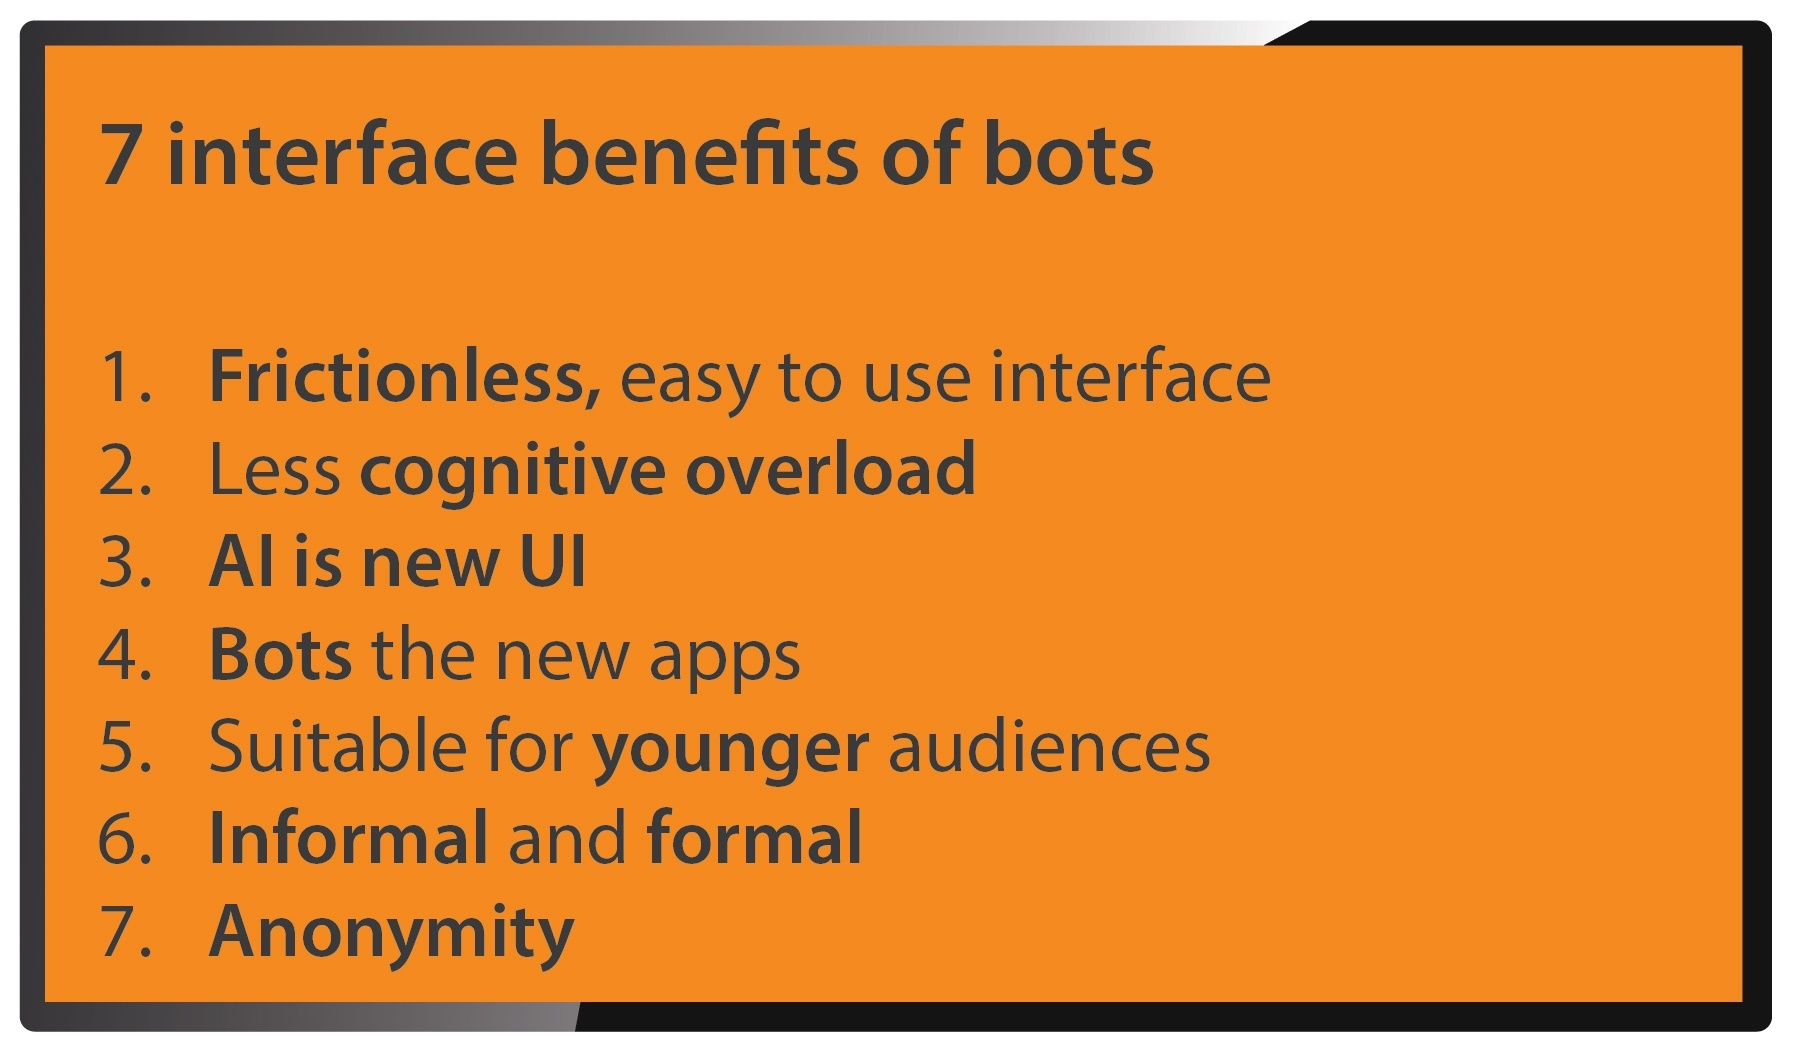 7 Interface benefits of chatbots for elearning | Learning Technologies 2018 | HowToMoodle